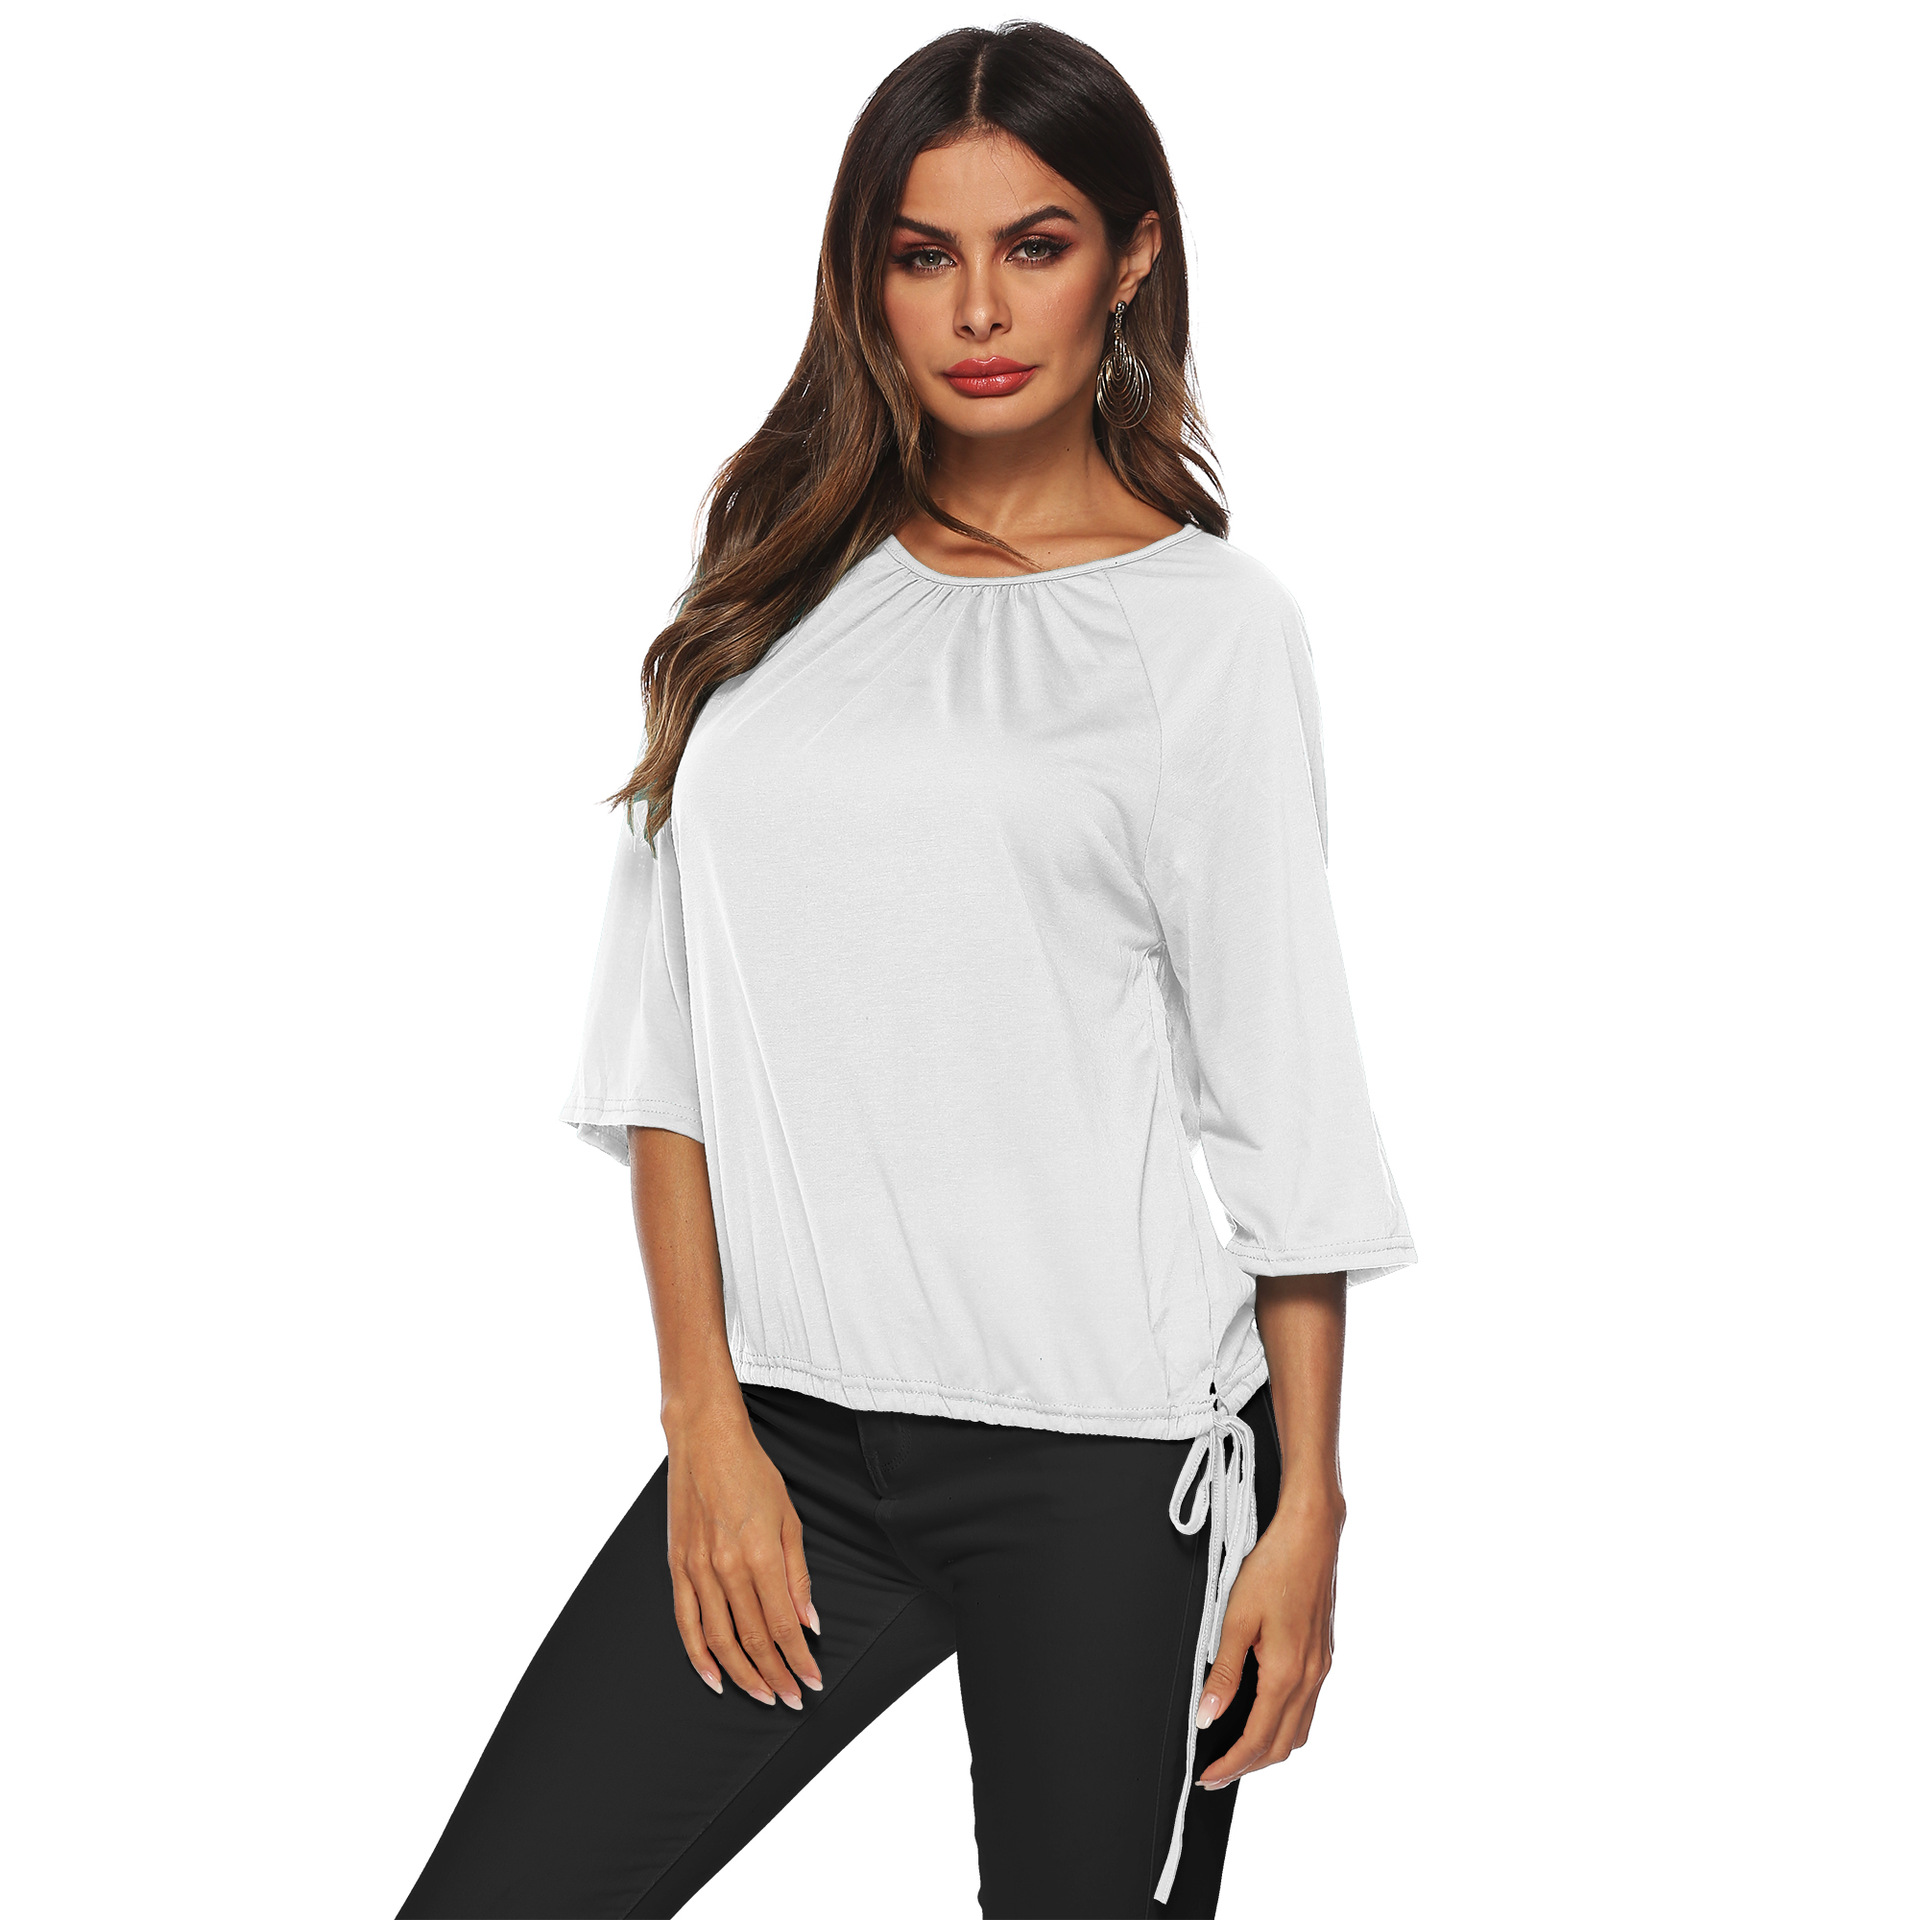 PGSD Summer solid Tee Pullover Three Quarter Sleeve O Neck Frenulum Loose casual T shirt female Simple Fashion Women Clothes in T Shirts from Women 39 s Clothing